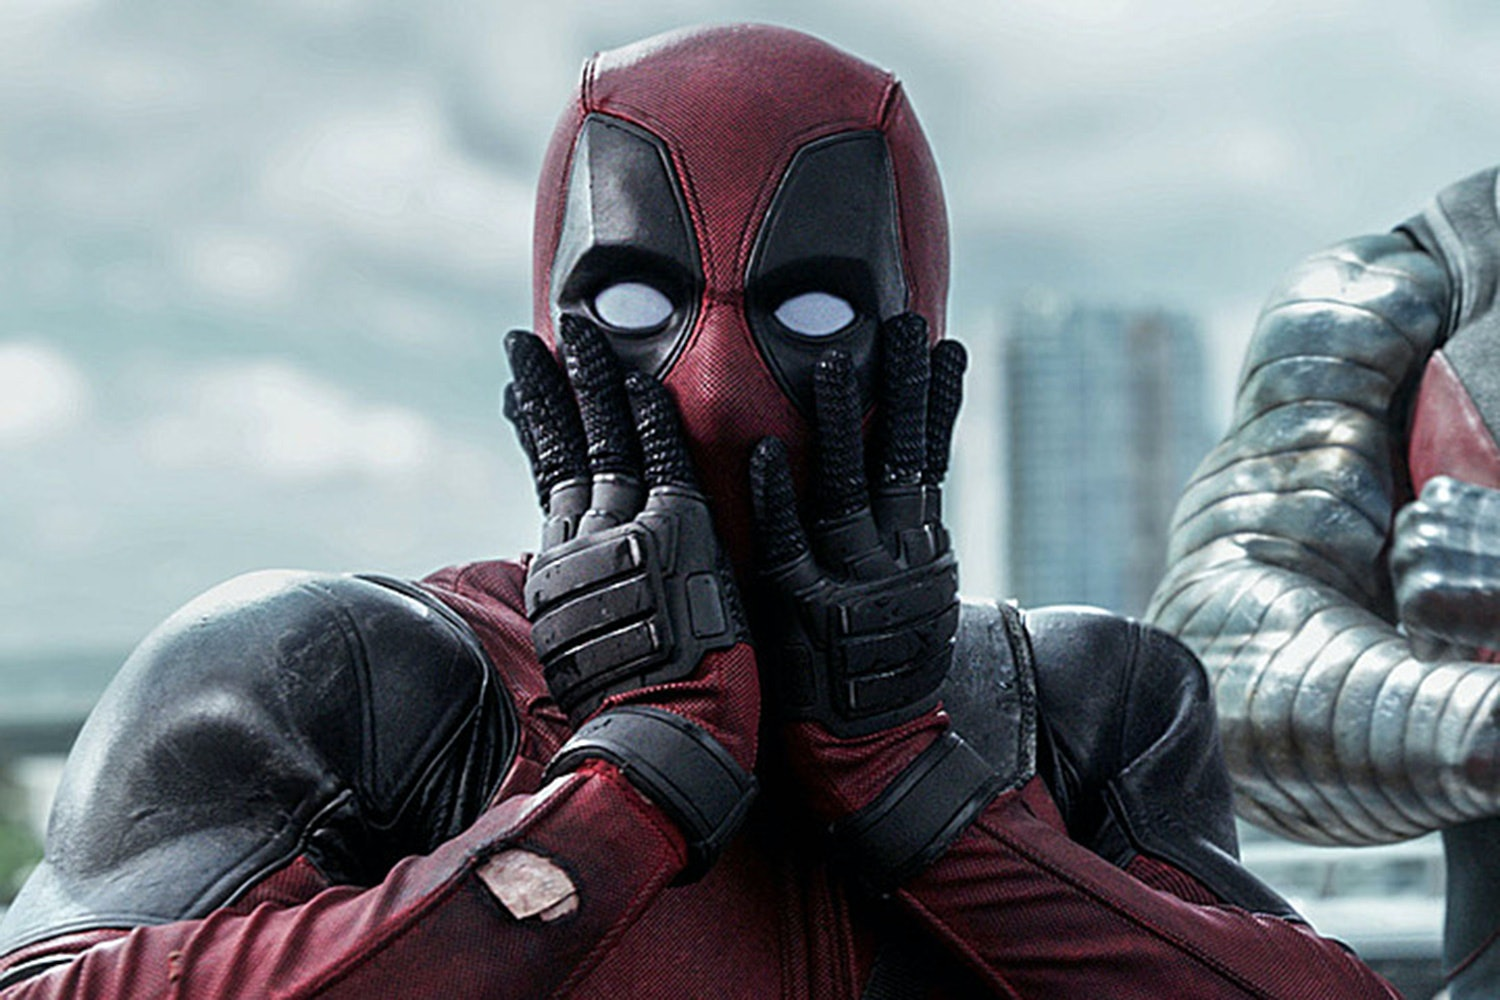 Ryan Reynolds Shares Deadpool's HIGHlariously Crass 'For Your Consideration' Oscars Video! Watch!